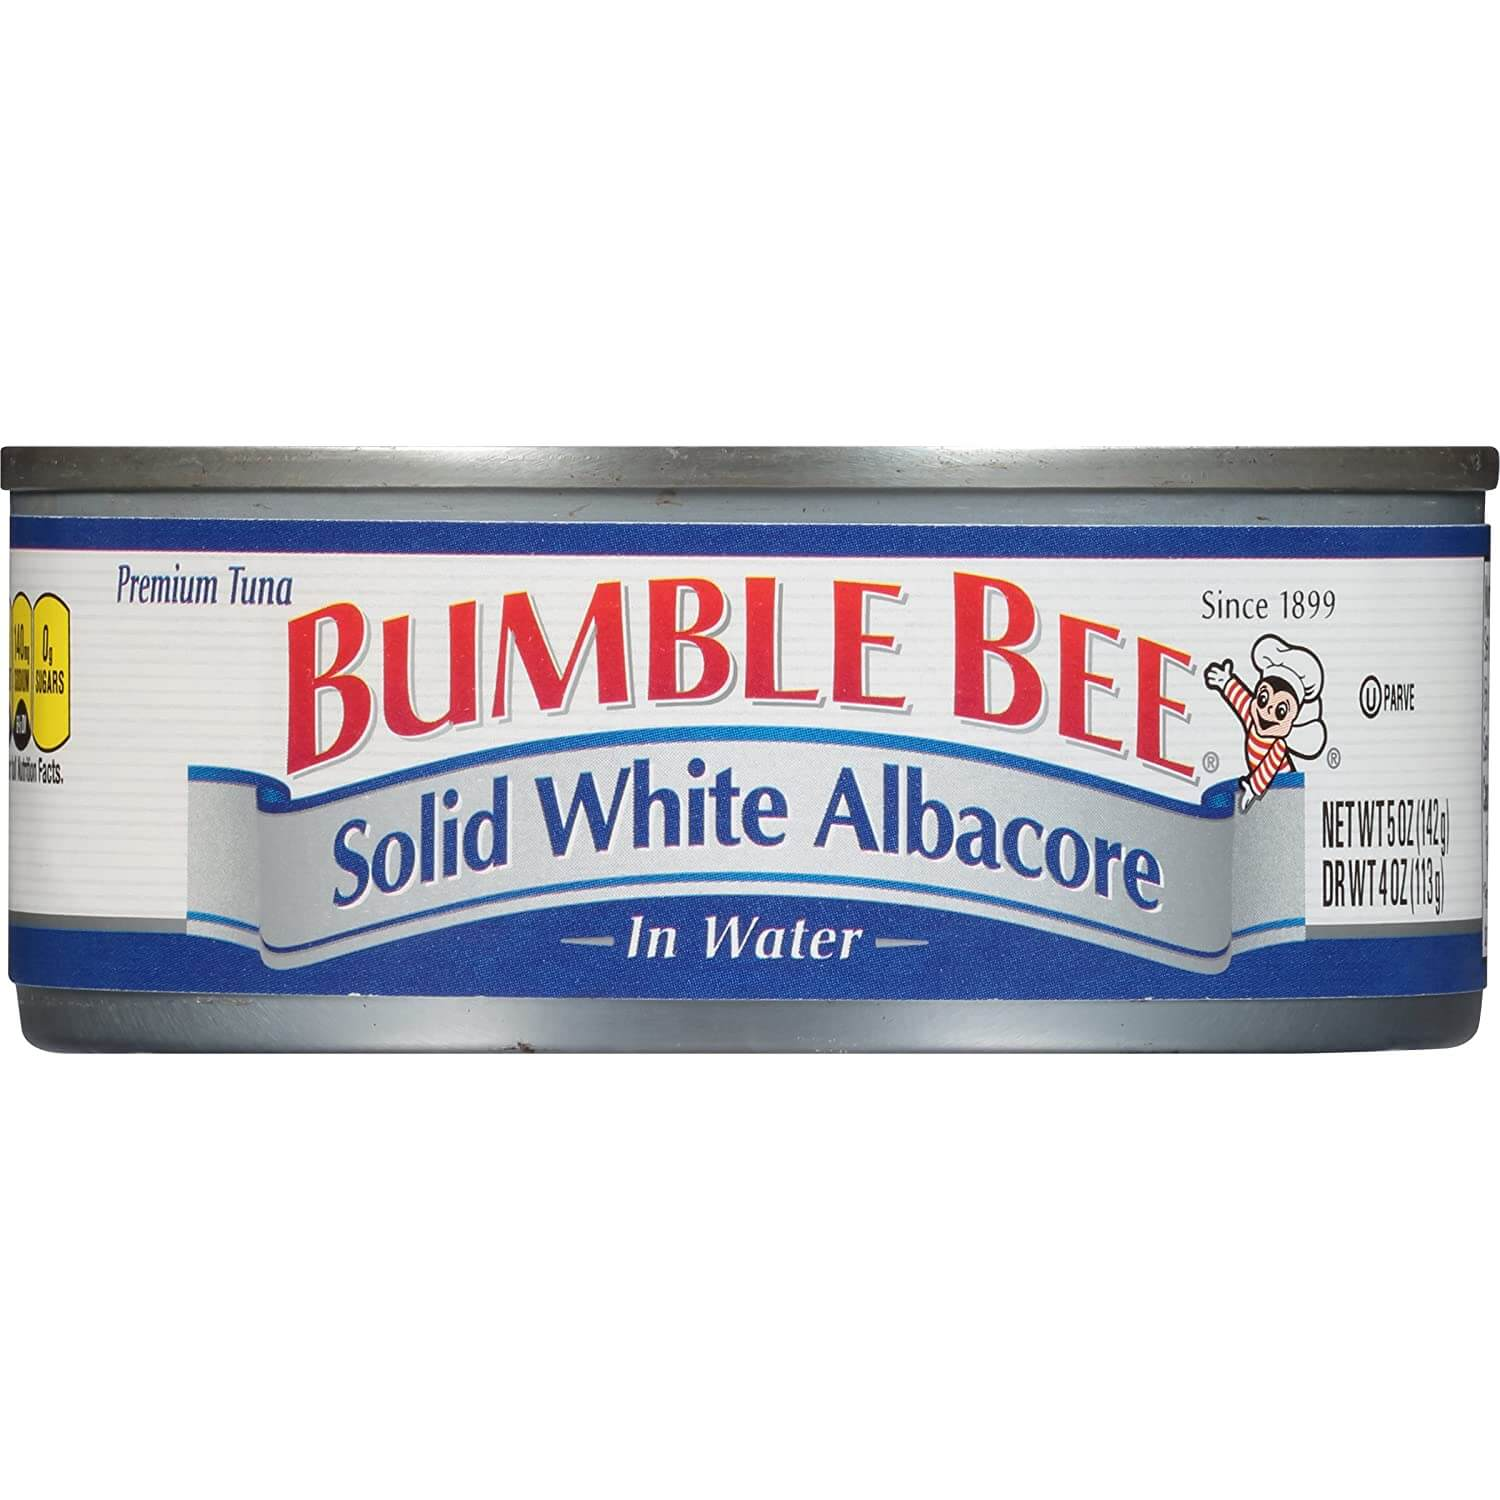 BUMBLE BEE Solid White Albacore Tuna Fish in Water